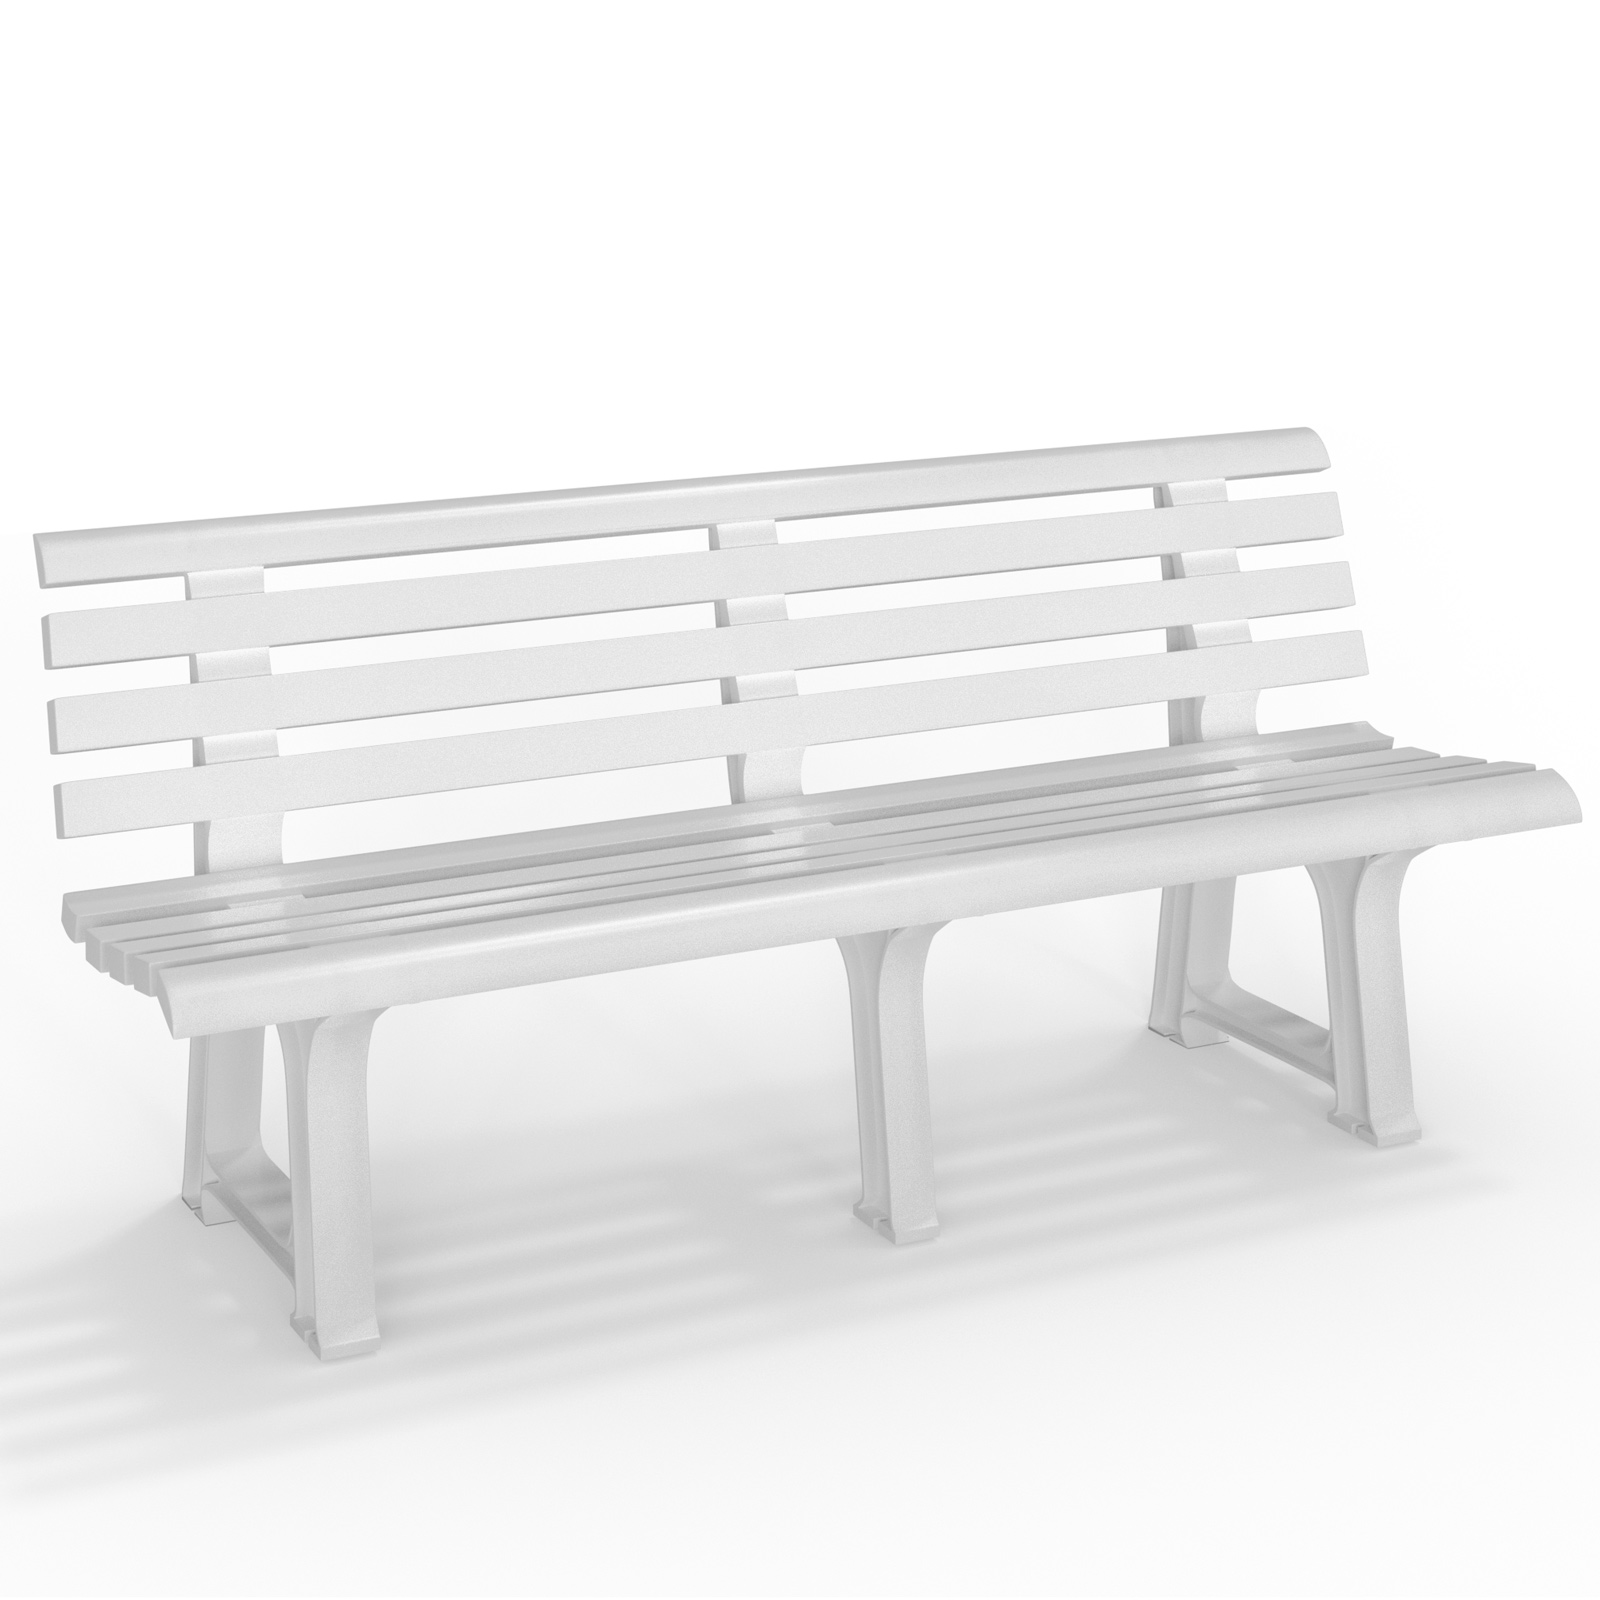 Bench Garden Seater Outdoor Furniture Patio Bench Plastic Benches Balcony Seater Ebay